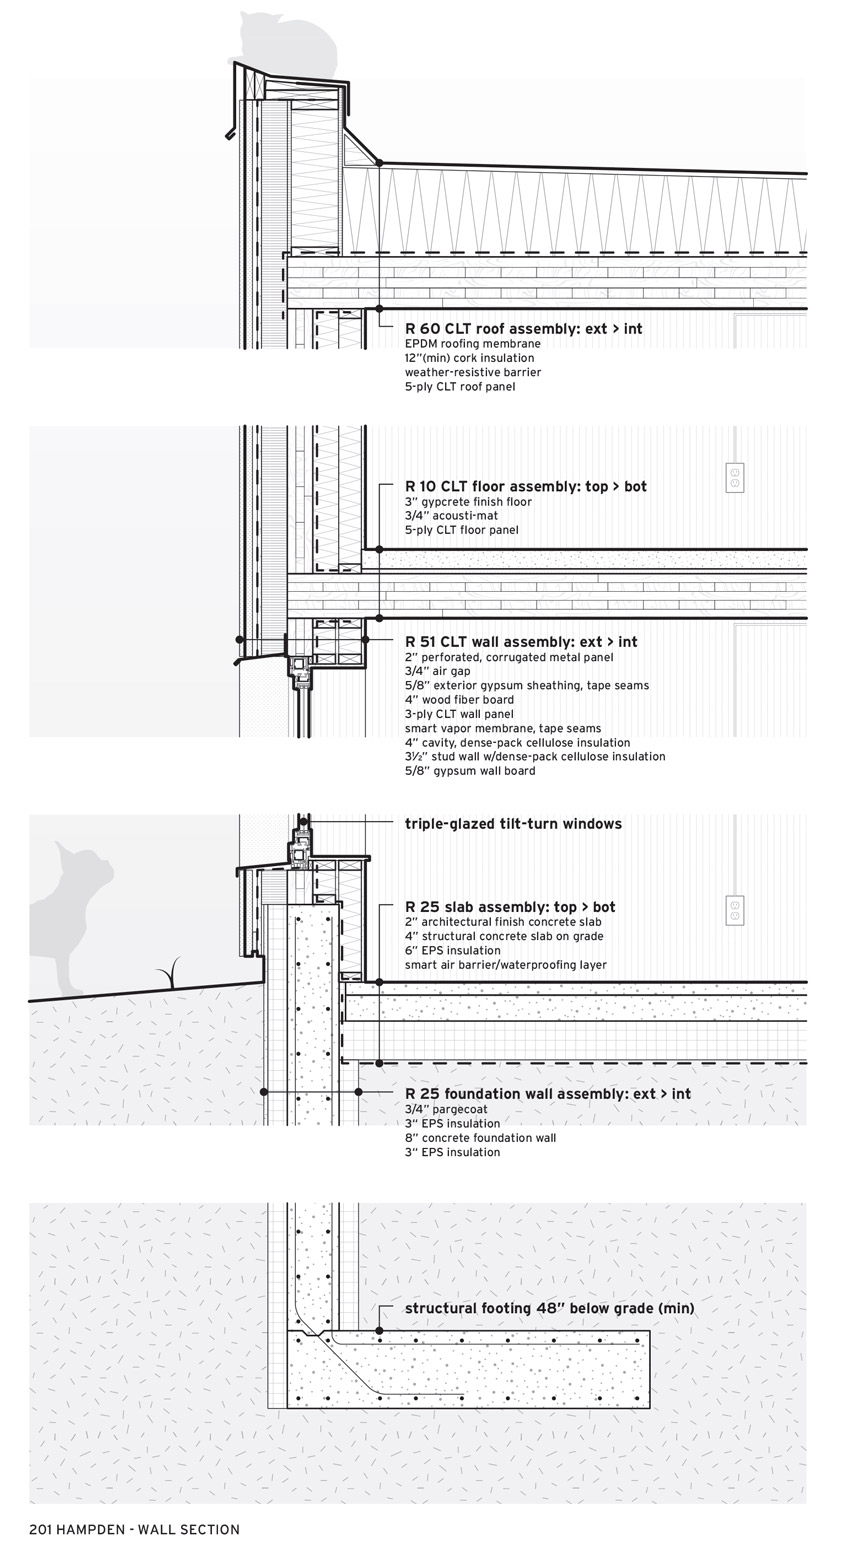 Ce Center Passive House Clt Cross Laminated Timber Construction With Passive House Insulation Strategy In 2020 Rainscreen Cladding Passive House Roof Detail